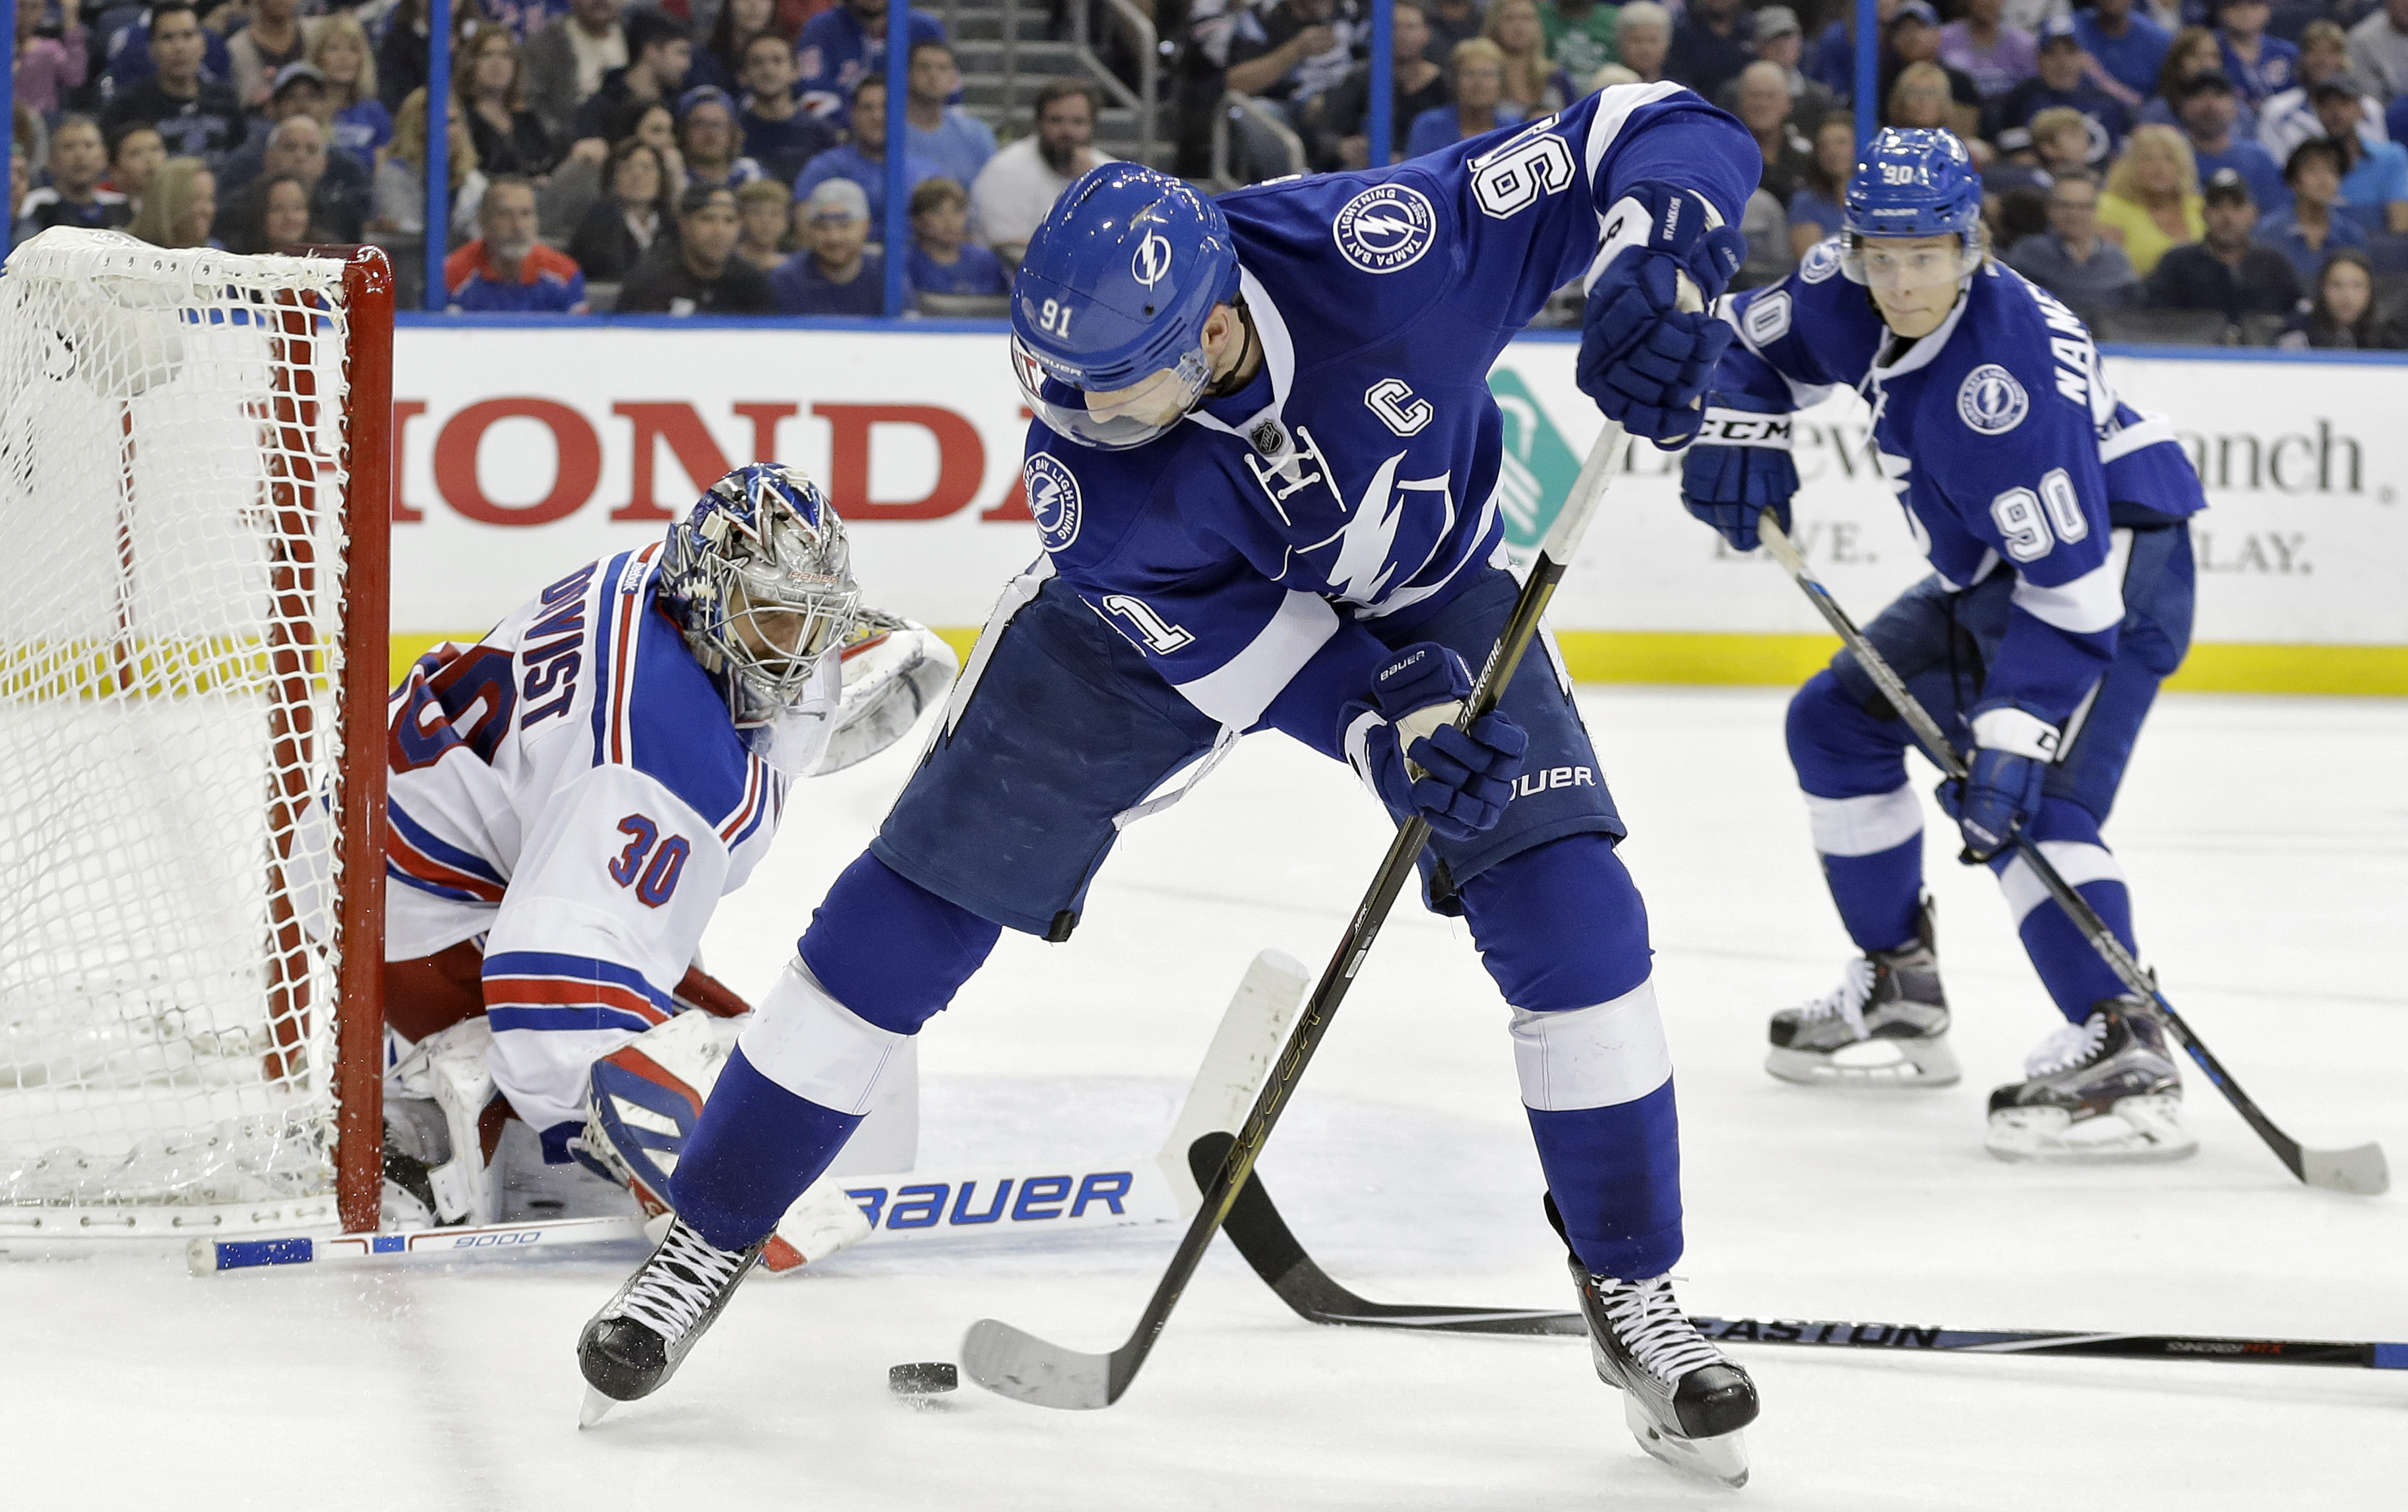 Tampa Bay Lightning center Steven Stamkos (91) shoots the puck against New York Rangers goalie Henrik Lundqvist, of Sweden, during the second period of an NHL hockey game Wednesday, Dec. 30, 2015, in Tampa, Fla. Looking for a rebound is Lightning's center